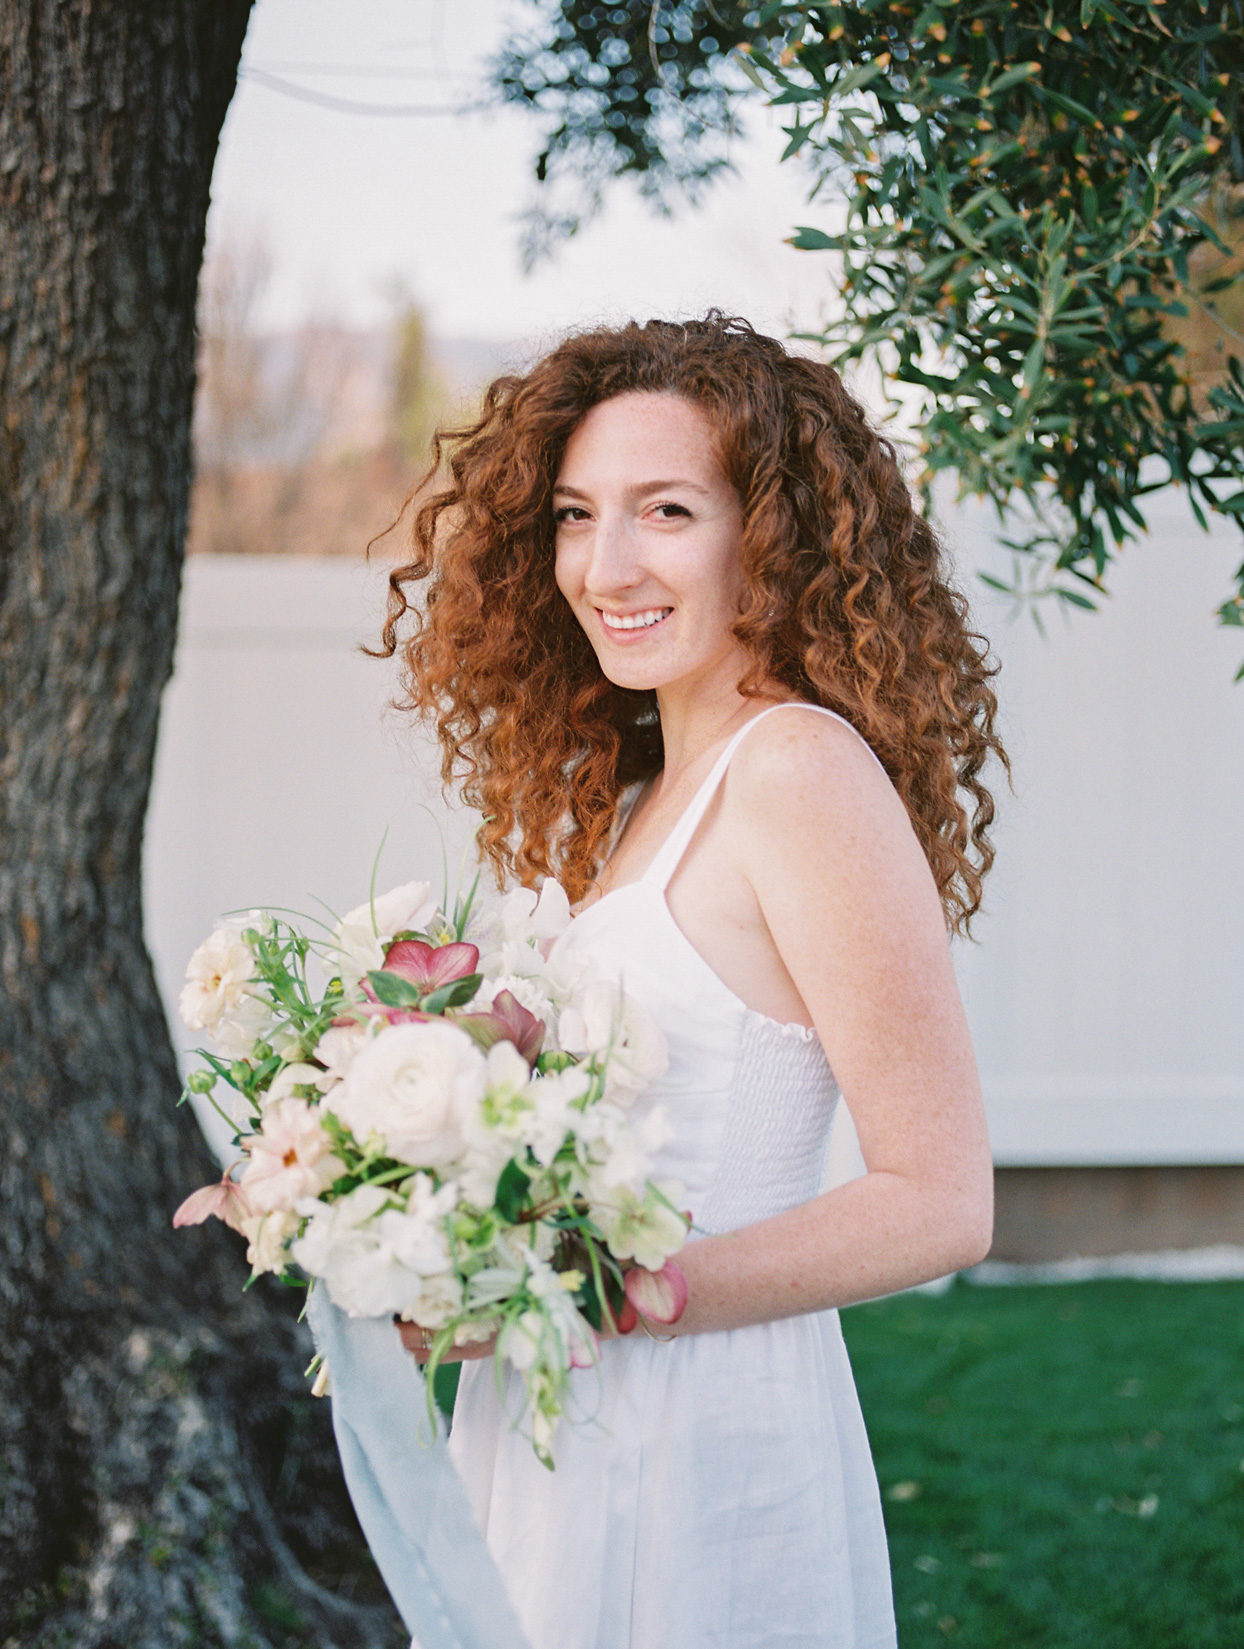 bride in simple white dress holding white and pink floral bouquet